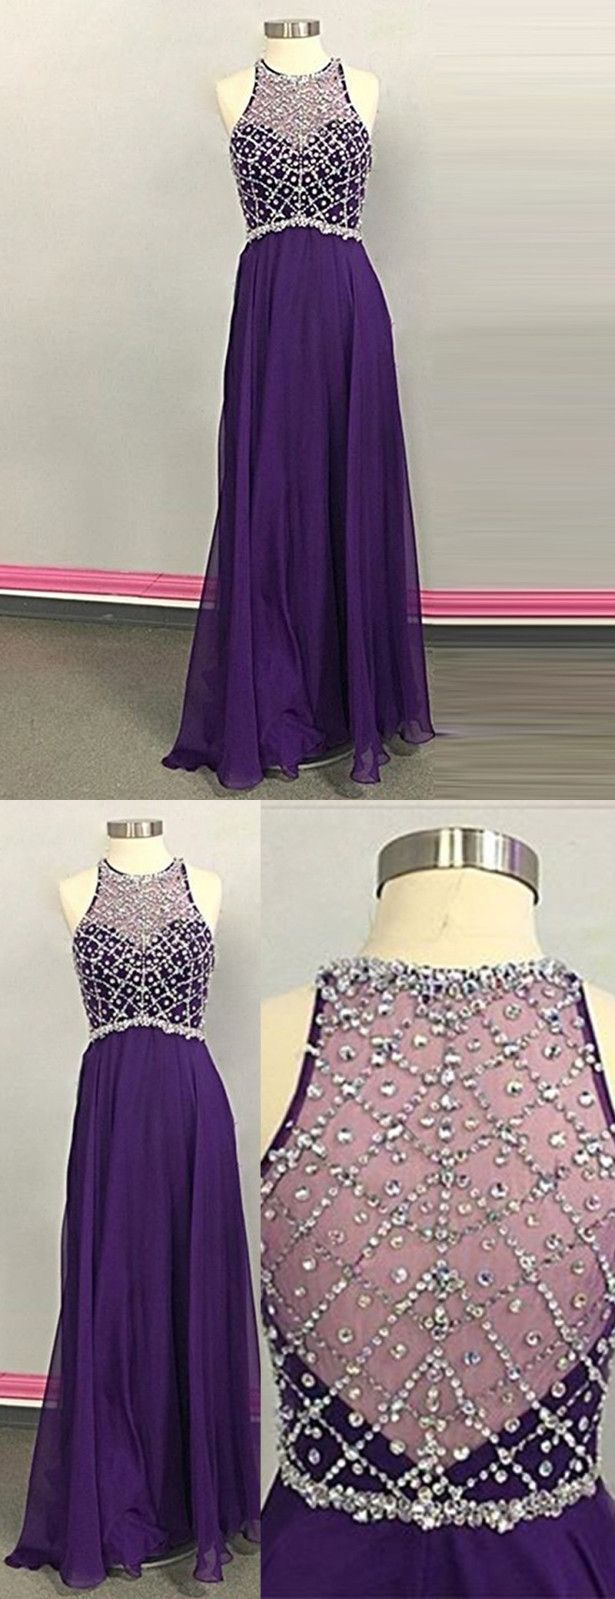 Nice Prom Dress,Jewel Prom Dress,Sleeveless Prom Dress,Long Prom Dress,Purple Prom Dress,Illusion Back Prom Dress,Beading Prom Dress,Prom Dress,Prom Dresses,2017 Prom Dress,2017 Prom Dresses